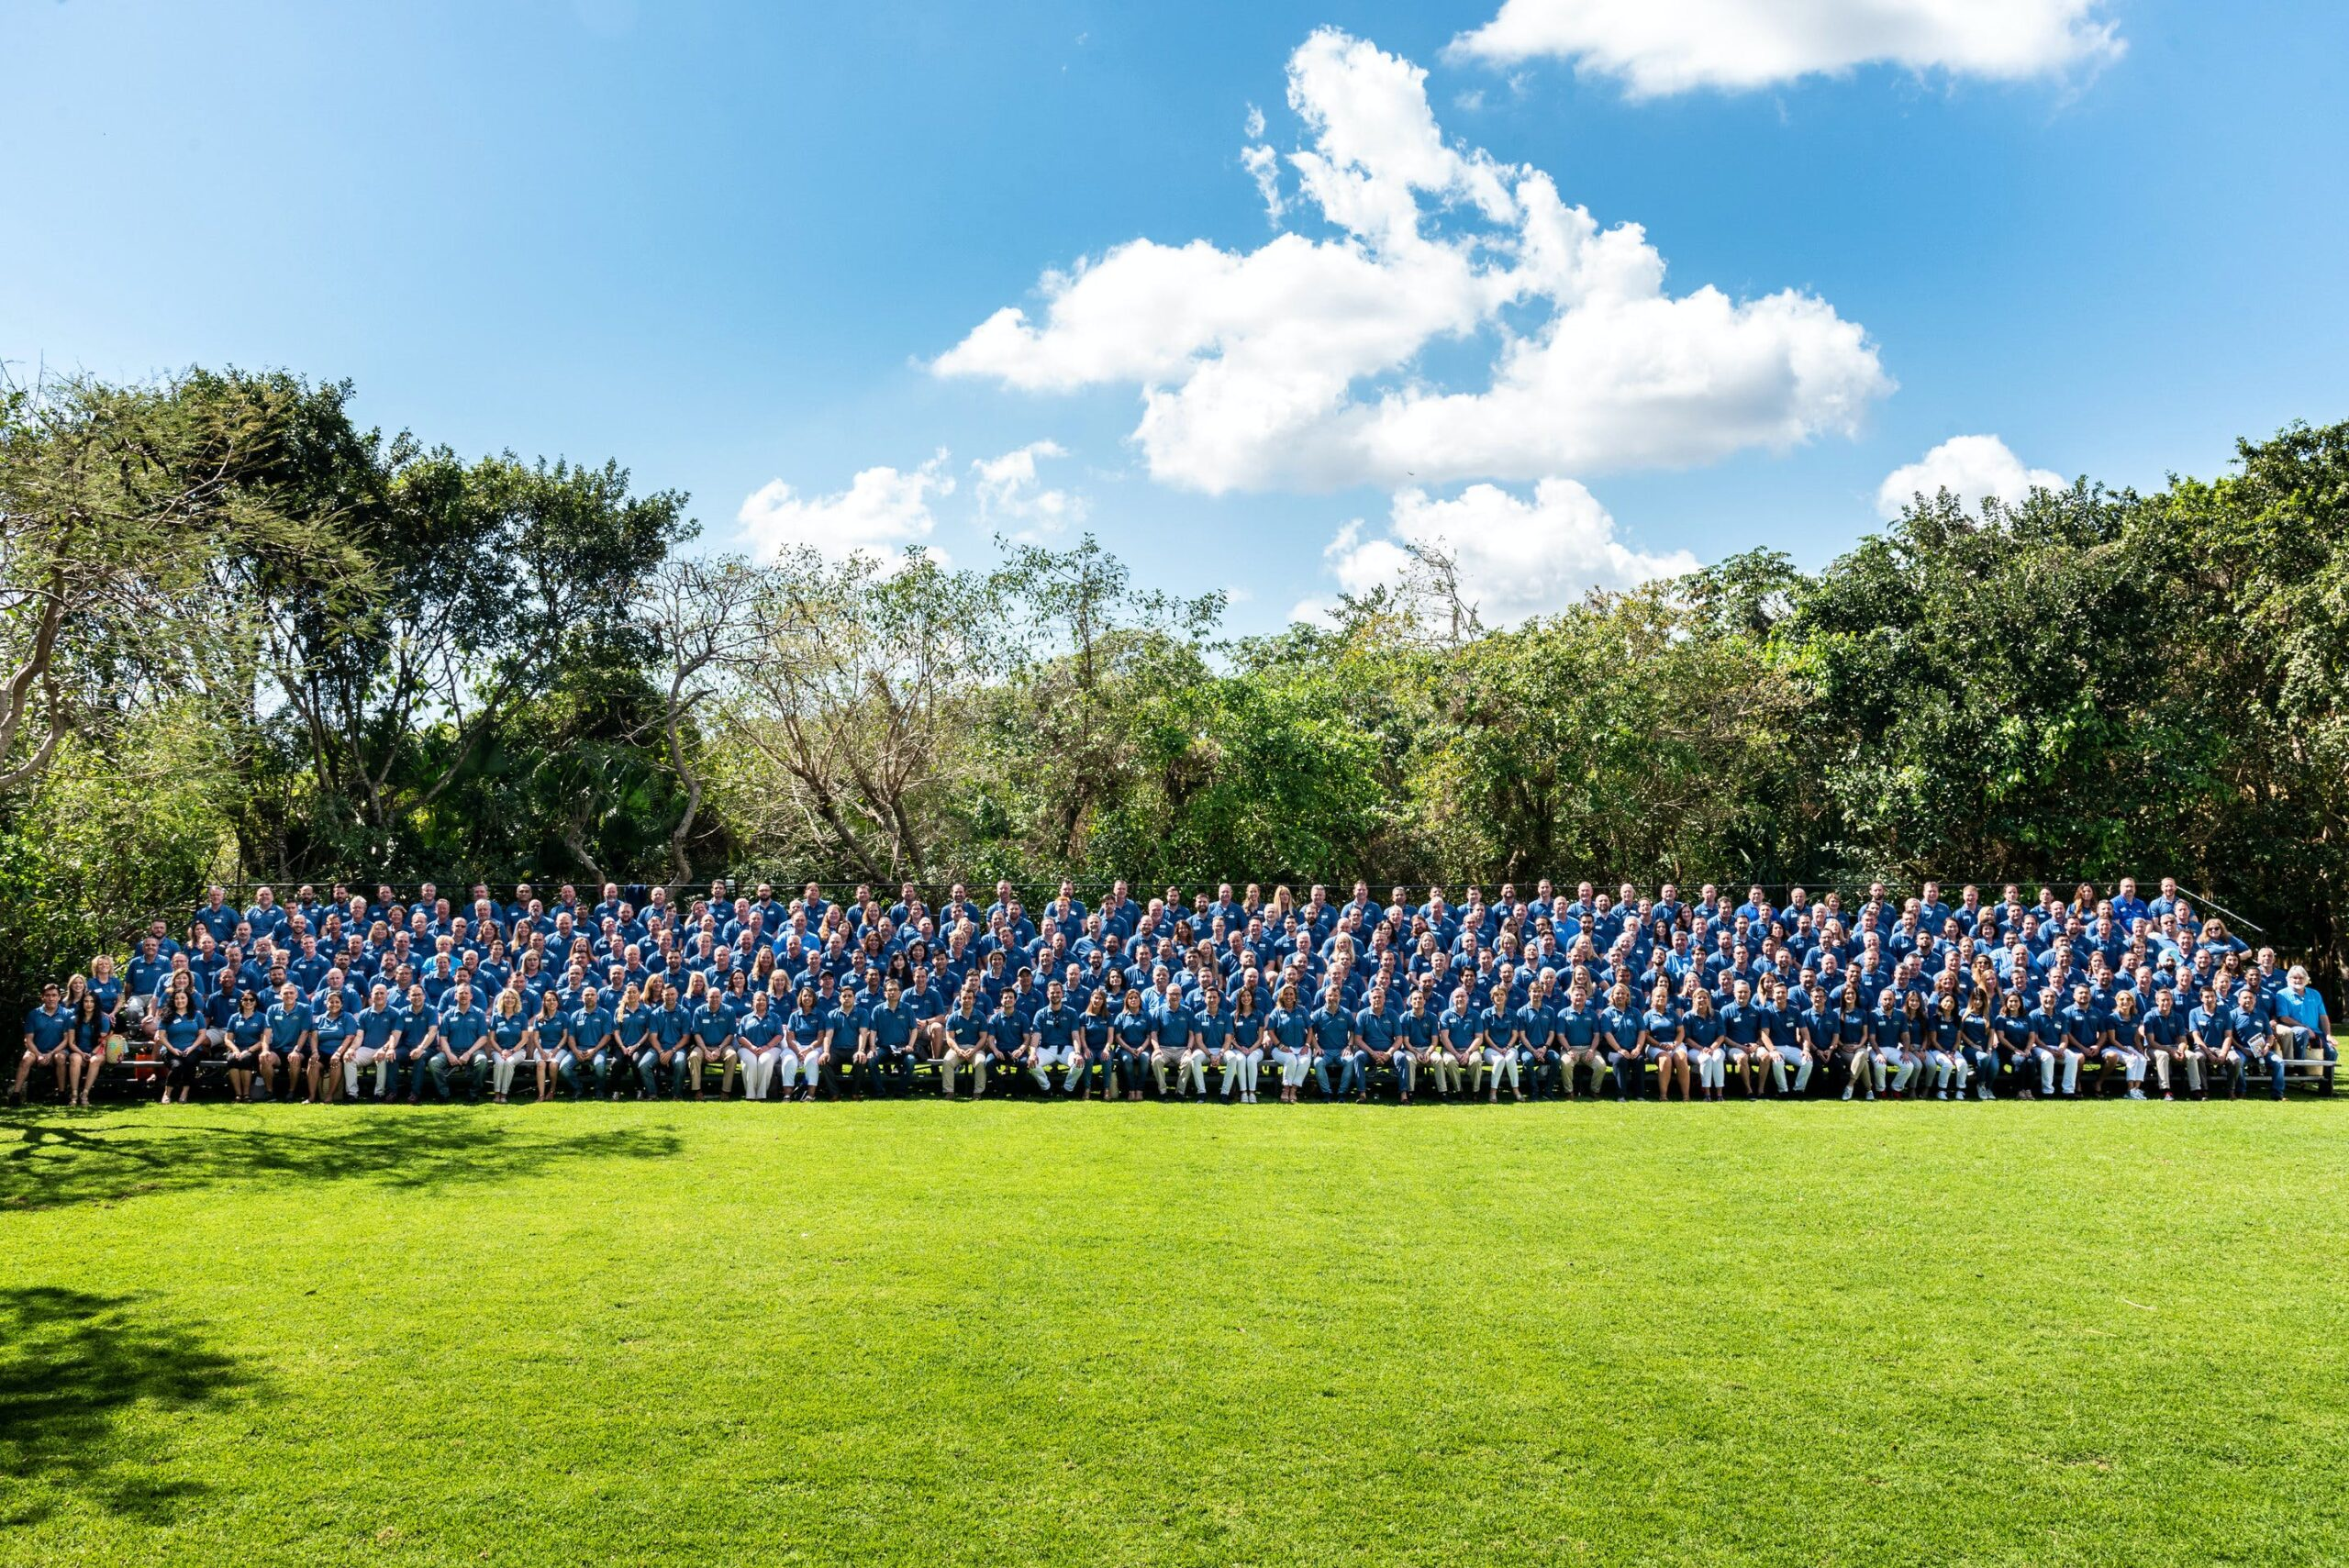 """Image of rsz c100 group photo 1 4 scaled in Record number of participating companies in the latest edition of the """"Cosentino 100"""" Convention - Cosentino"""